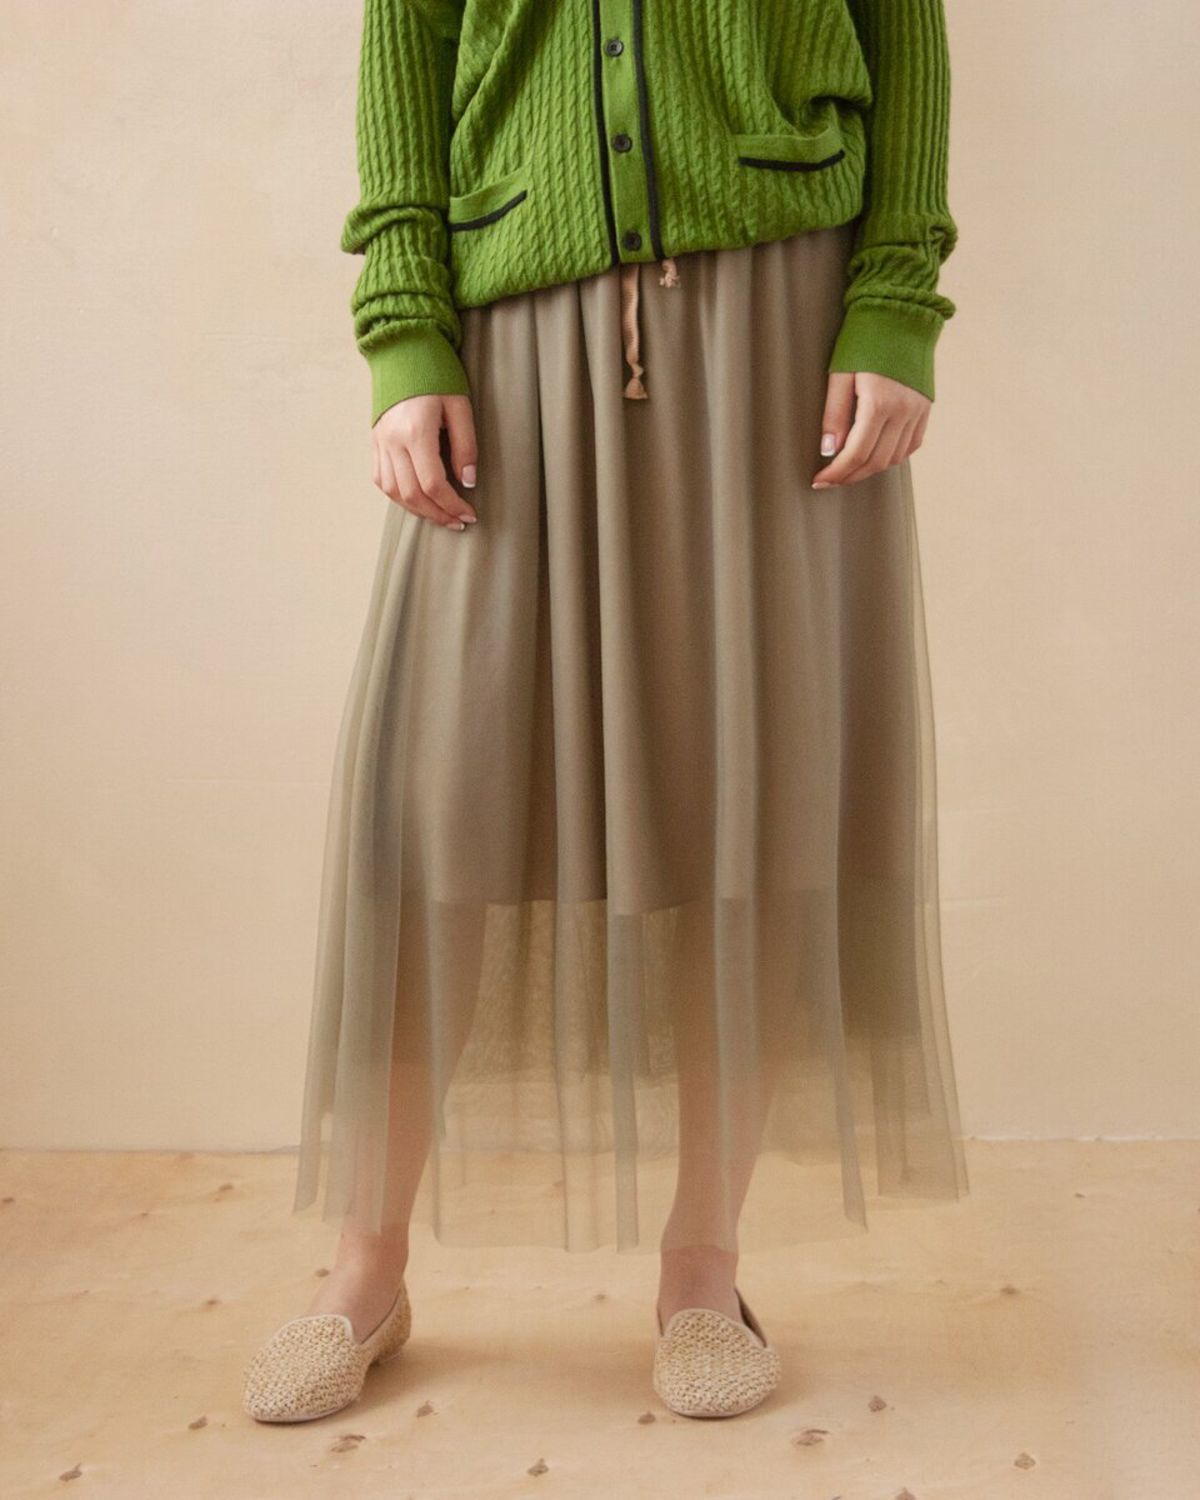 Women's air skirt Emmy, Skirts, Moscow,  Фото №1